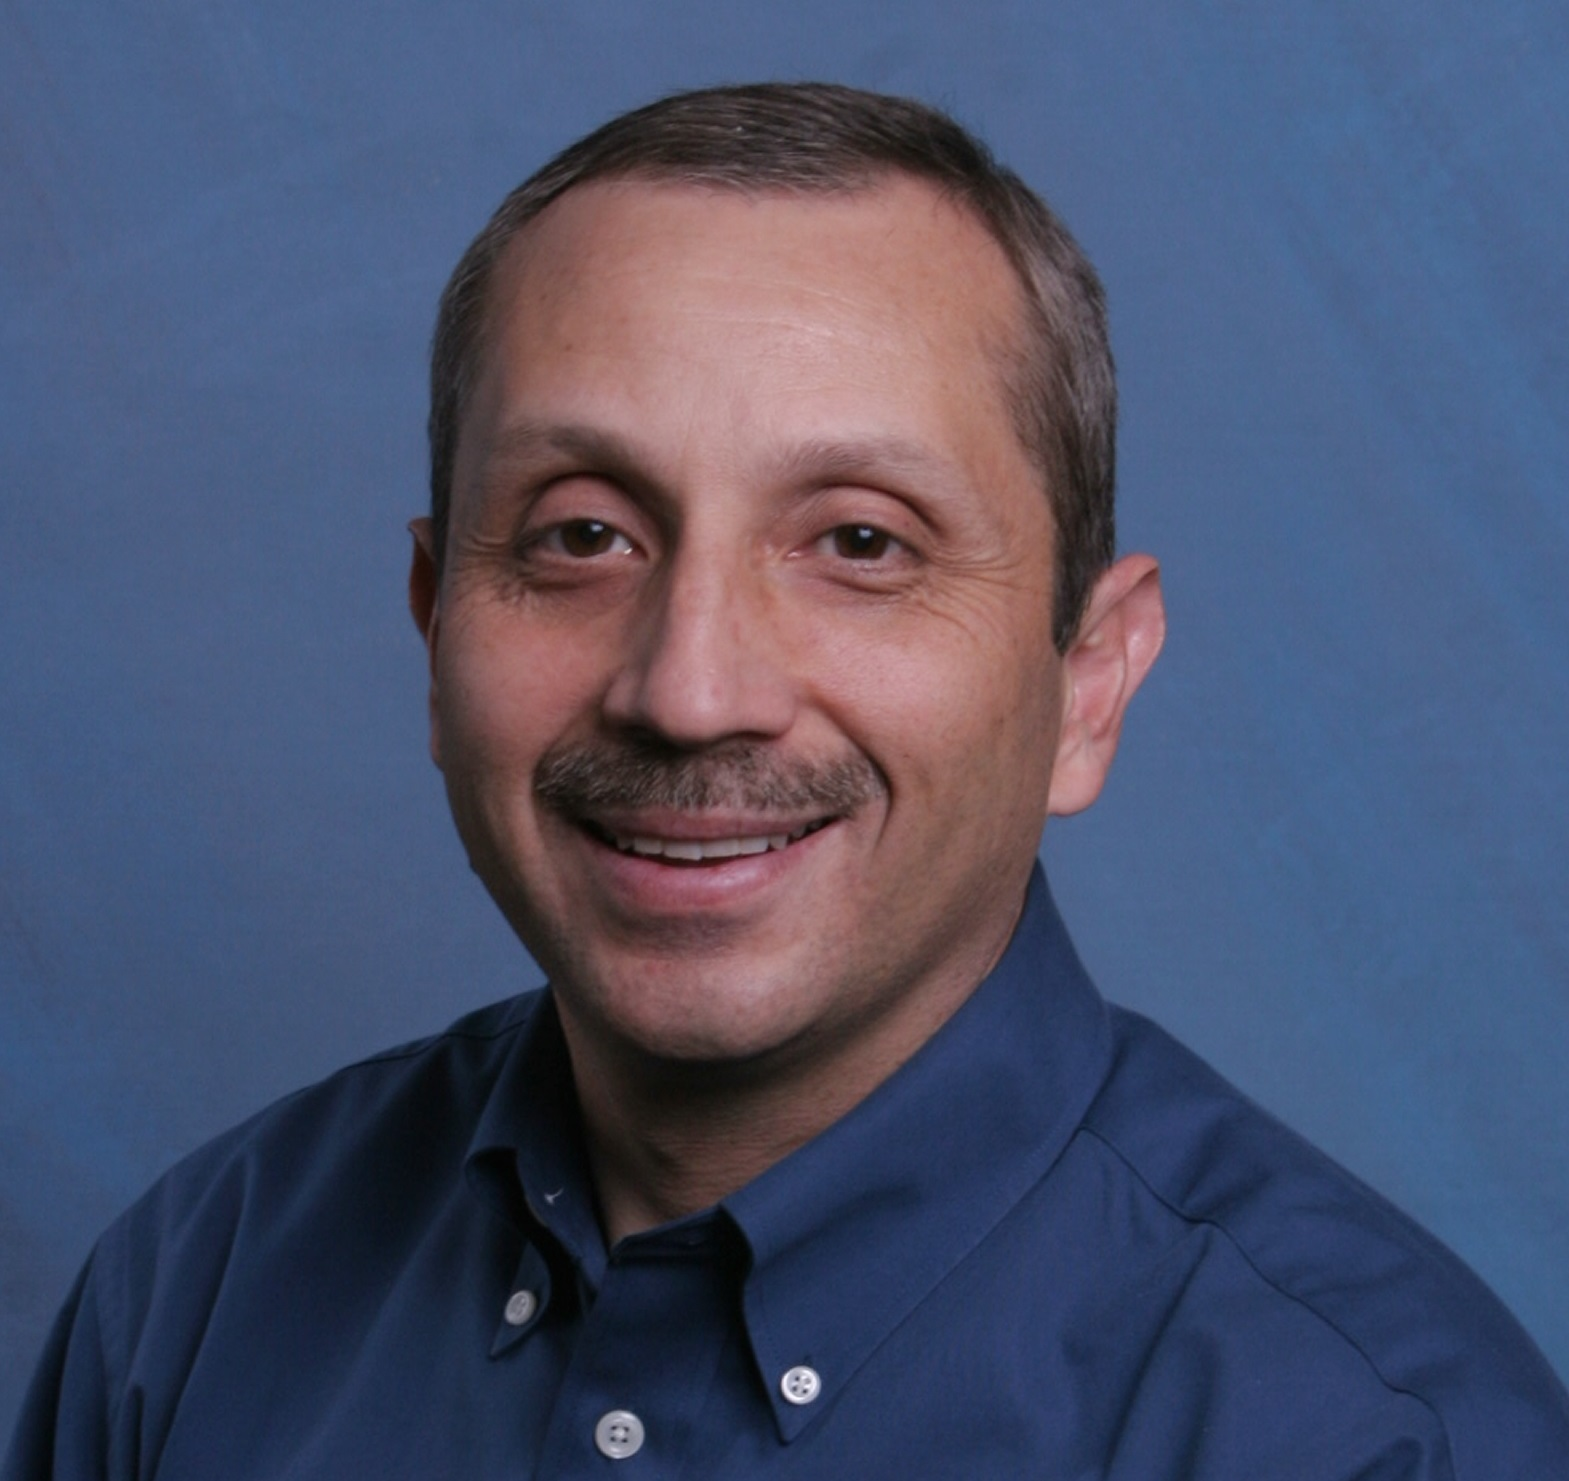 Dr. Adolfo Barrera is a skilled pediatric dentist in San Jose, CA.